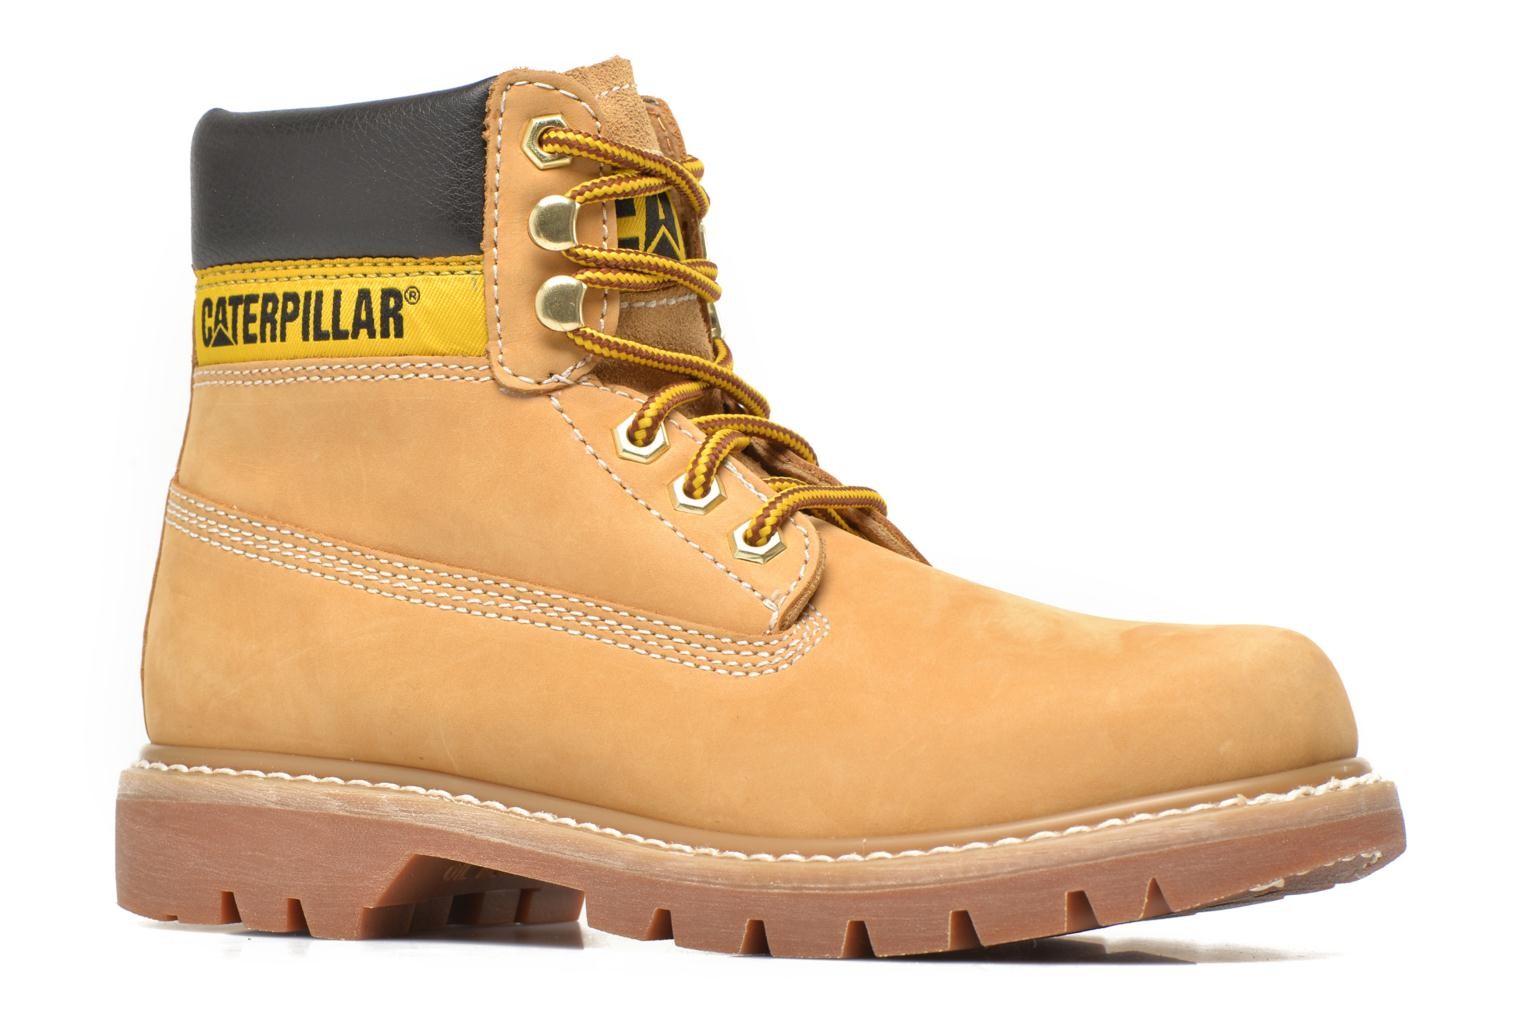 Bottines et boots Caterpillar COLORADO W Beige vue derrière